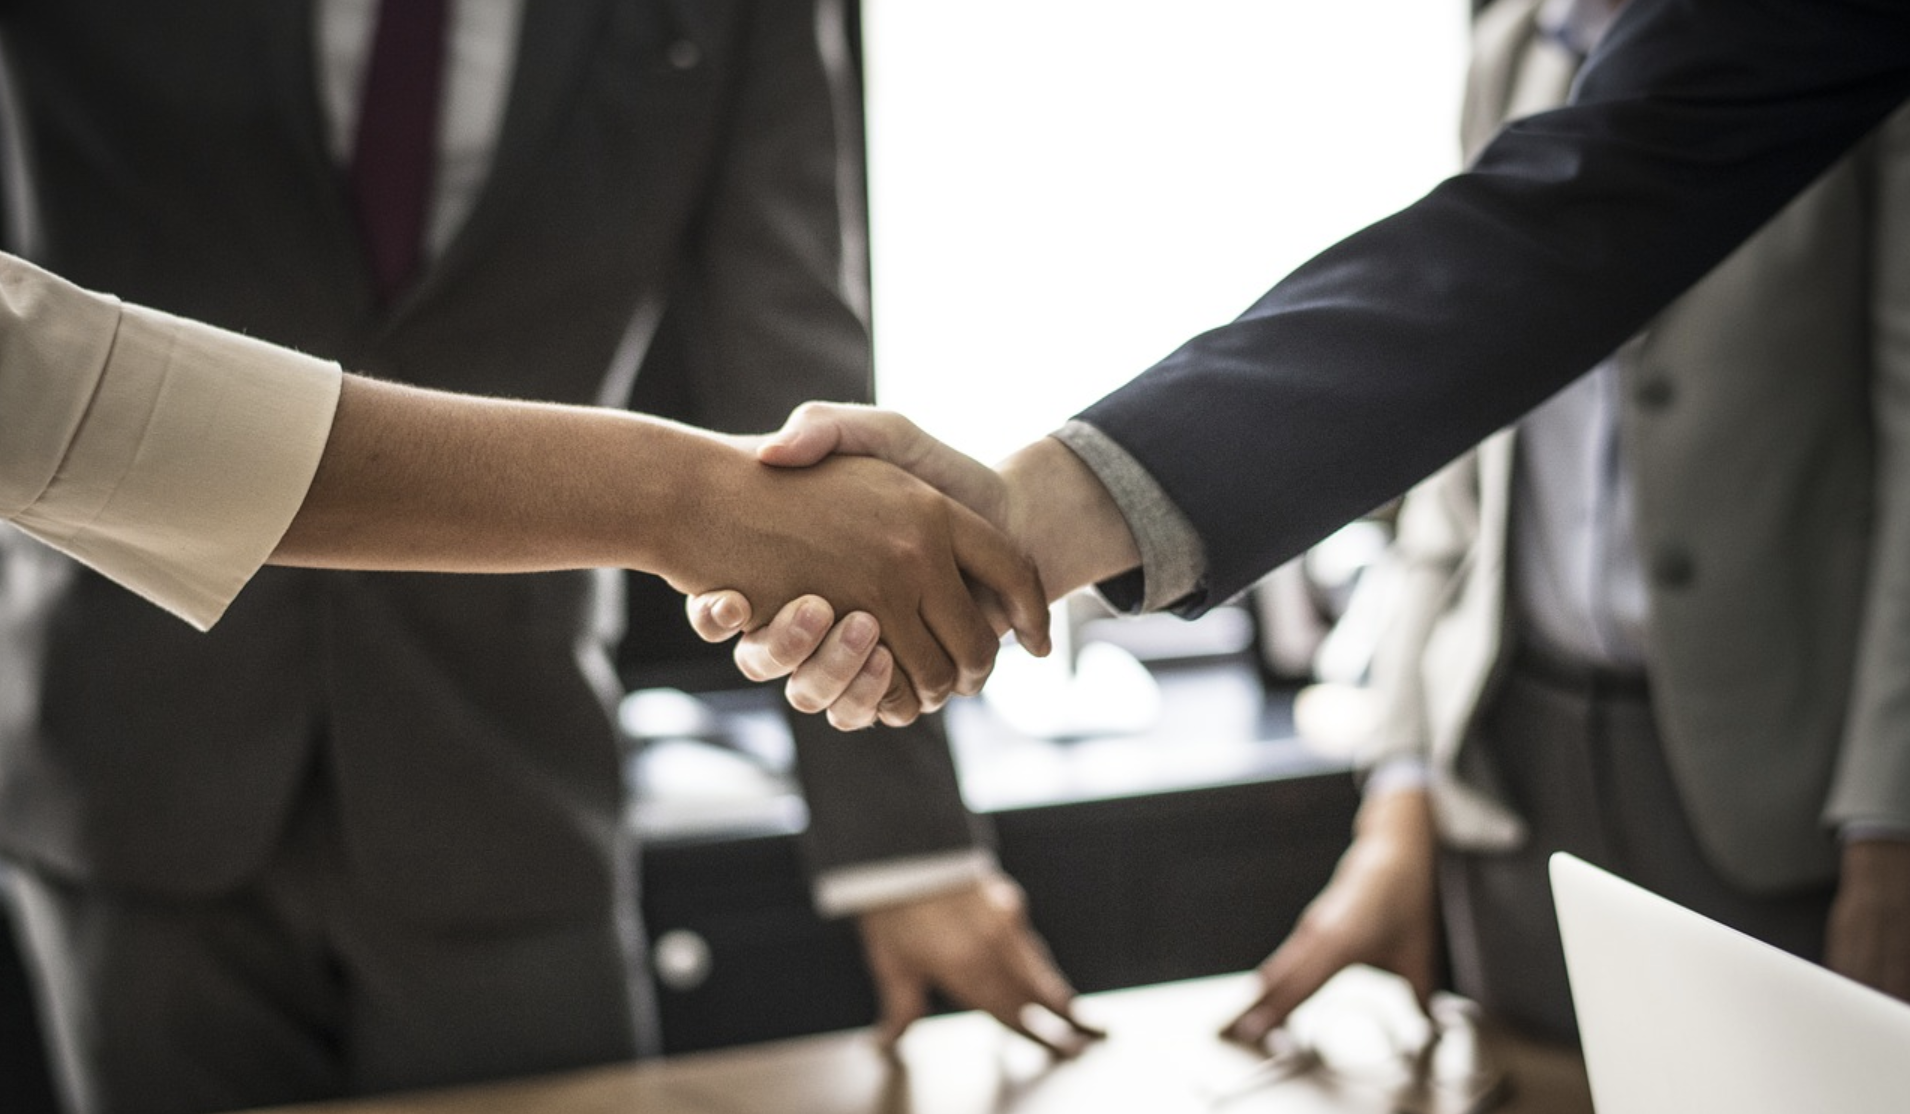 Two people shaking hands in a conference room